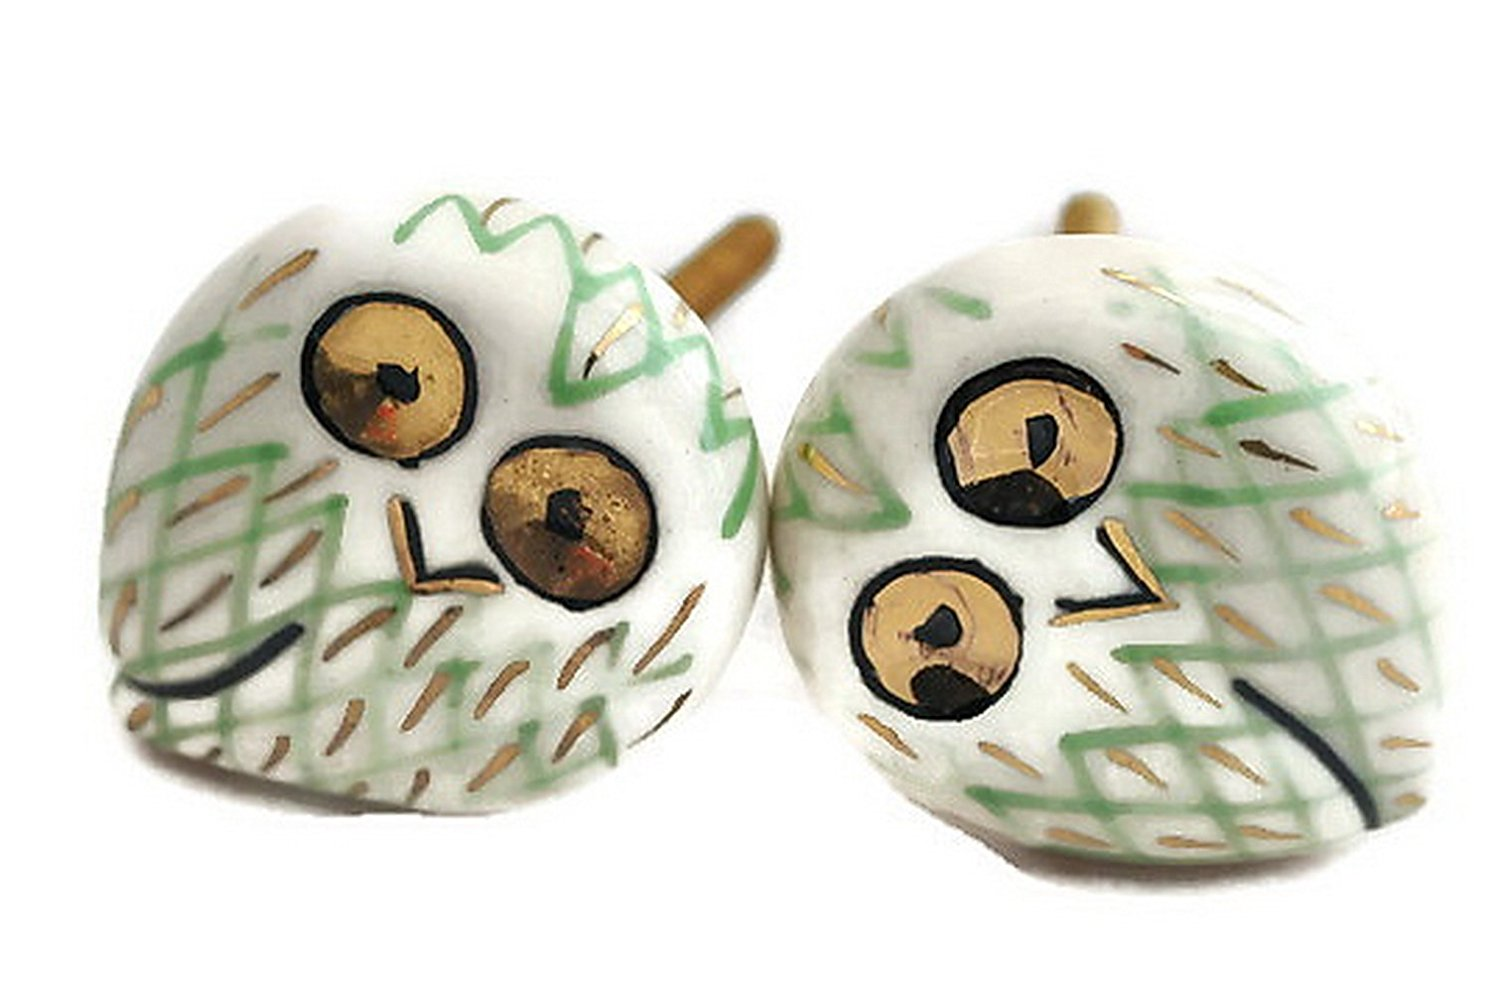 StarZebra Set of 2 - Handmade Hand-painted Ceramic Knobs & Pulls - Decorative Handles for Cabinets/Dressers/Drawers - Home Decor - Jungle Owl